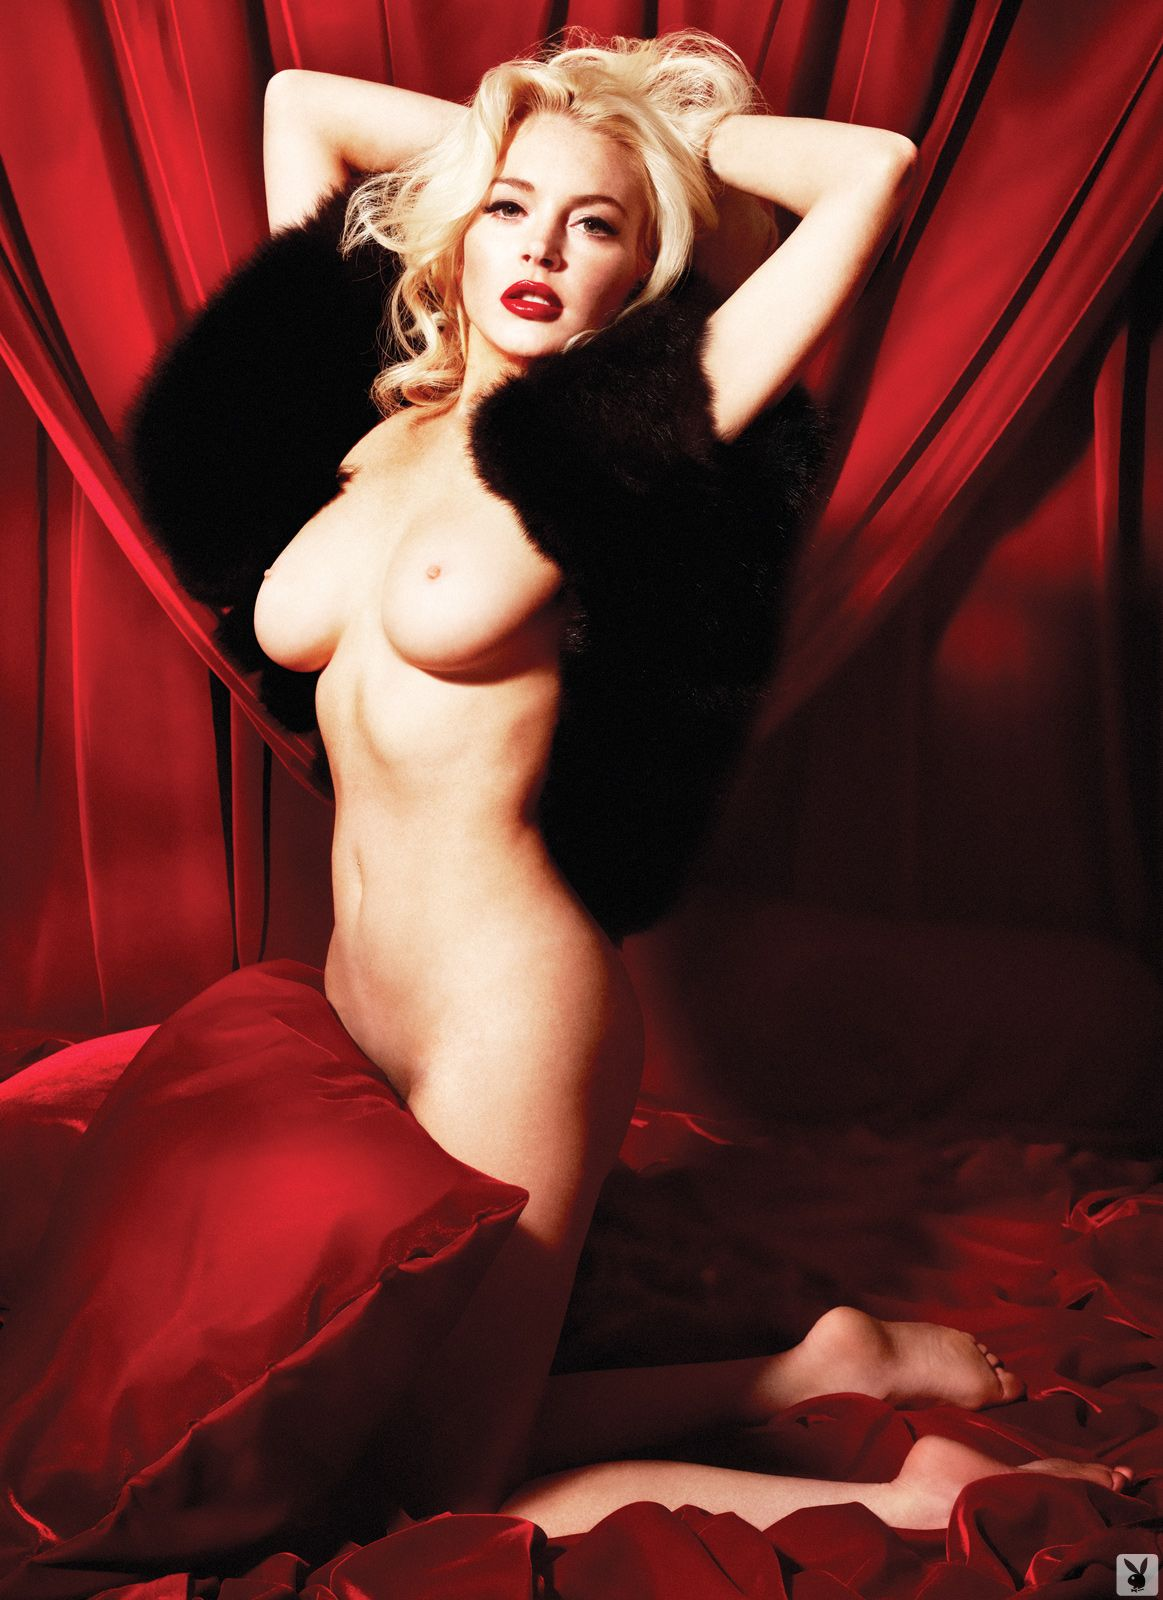 Lindsay Lohan's Most Naked Instagram Photos